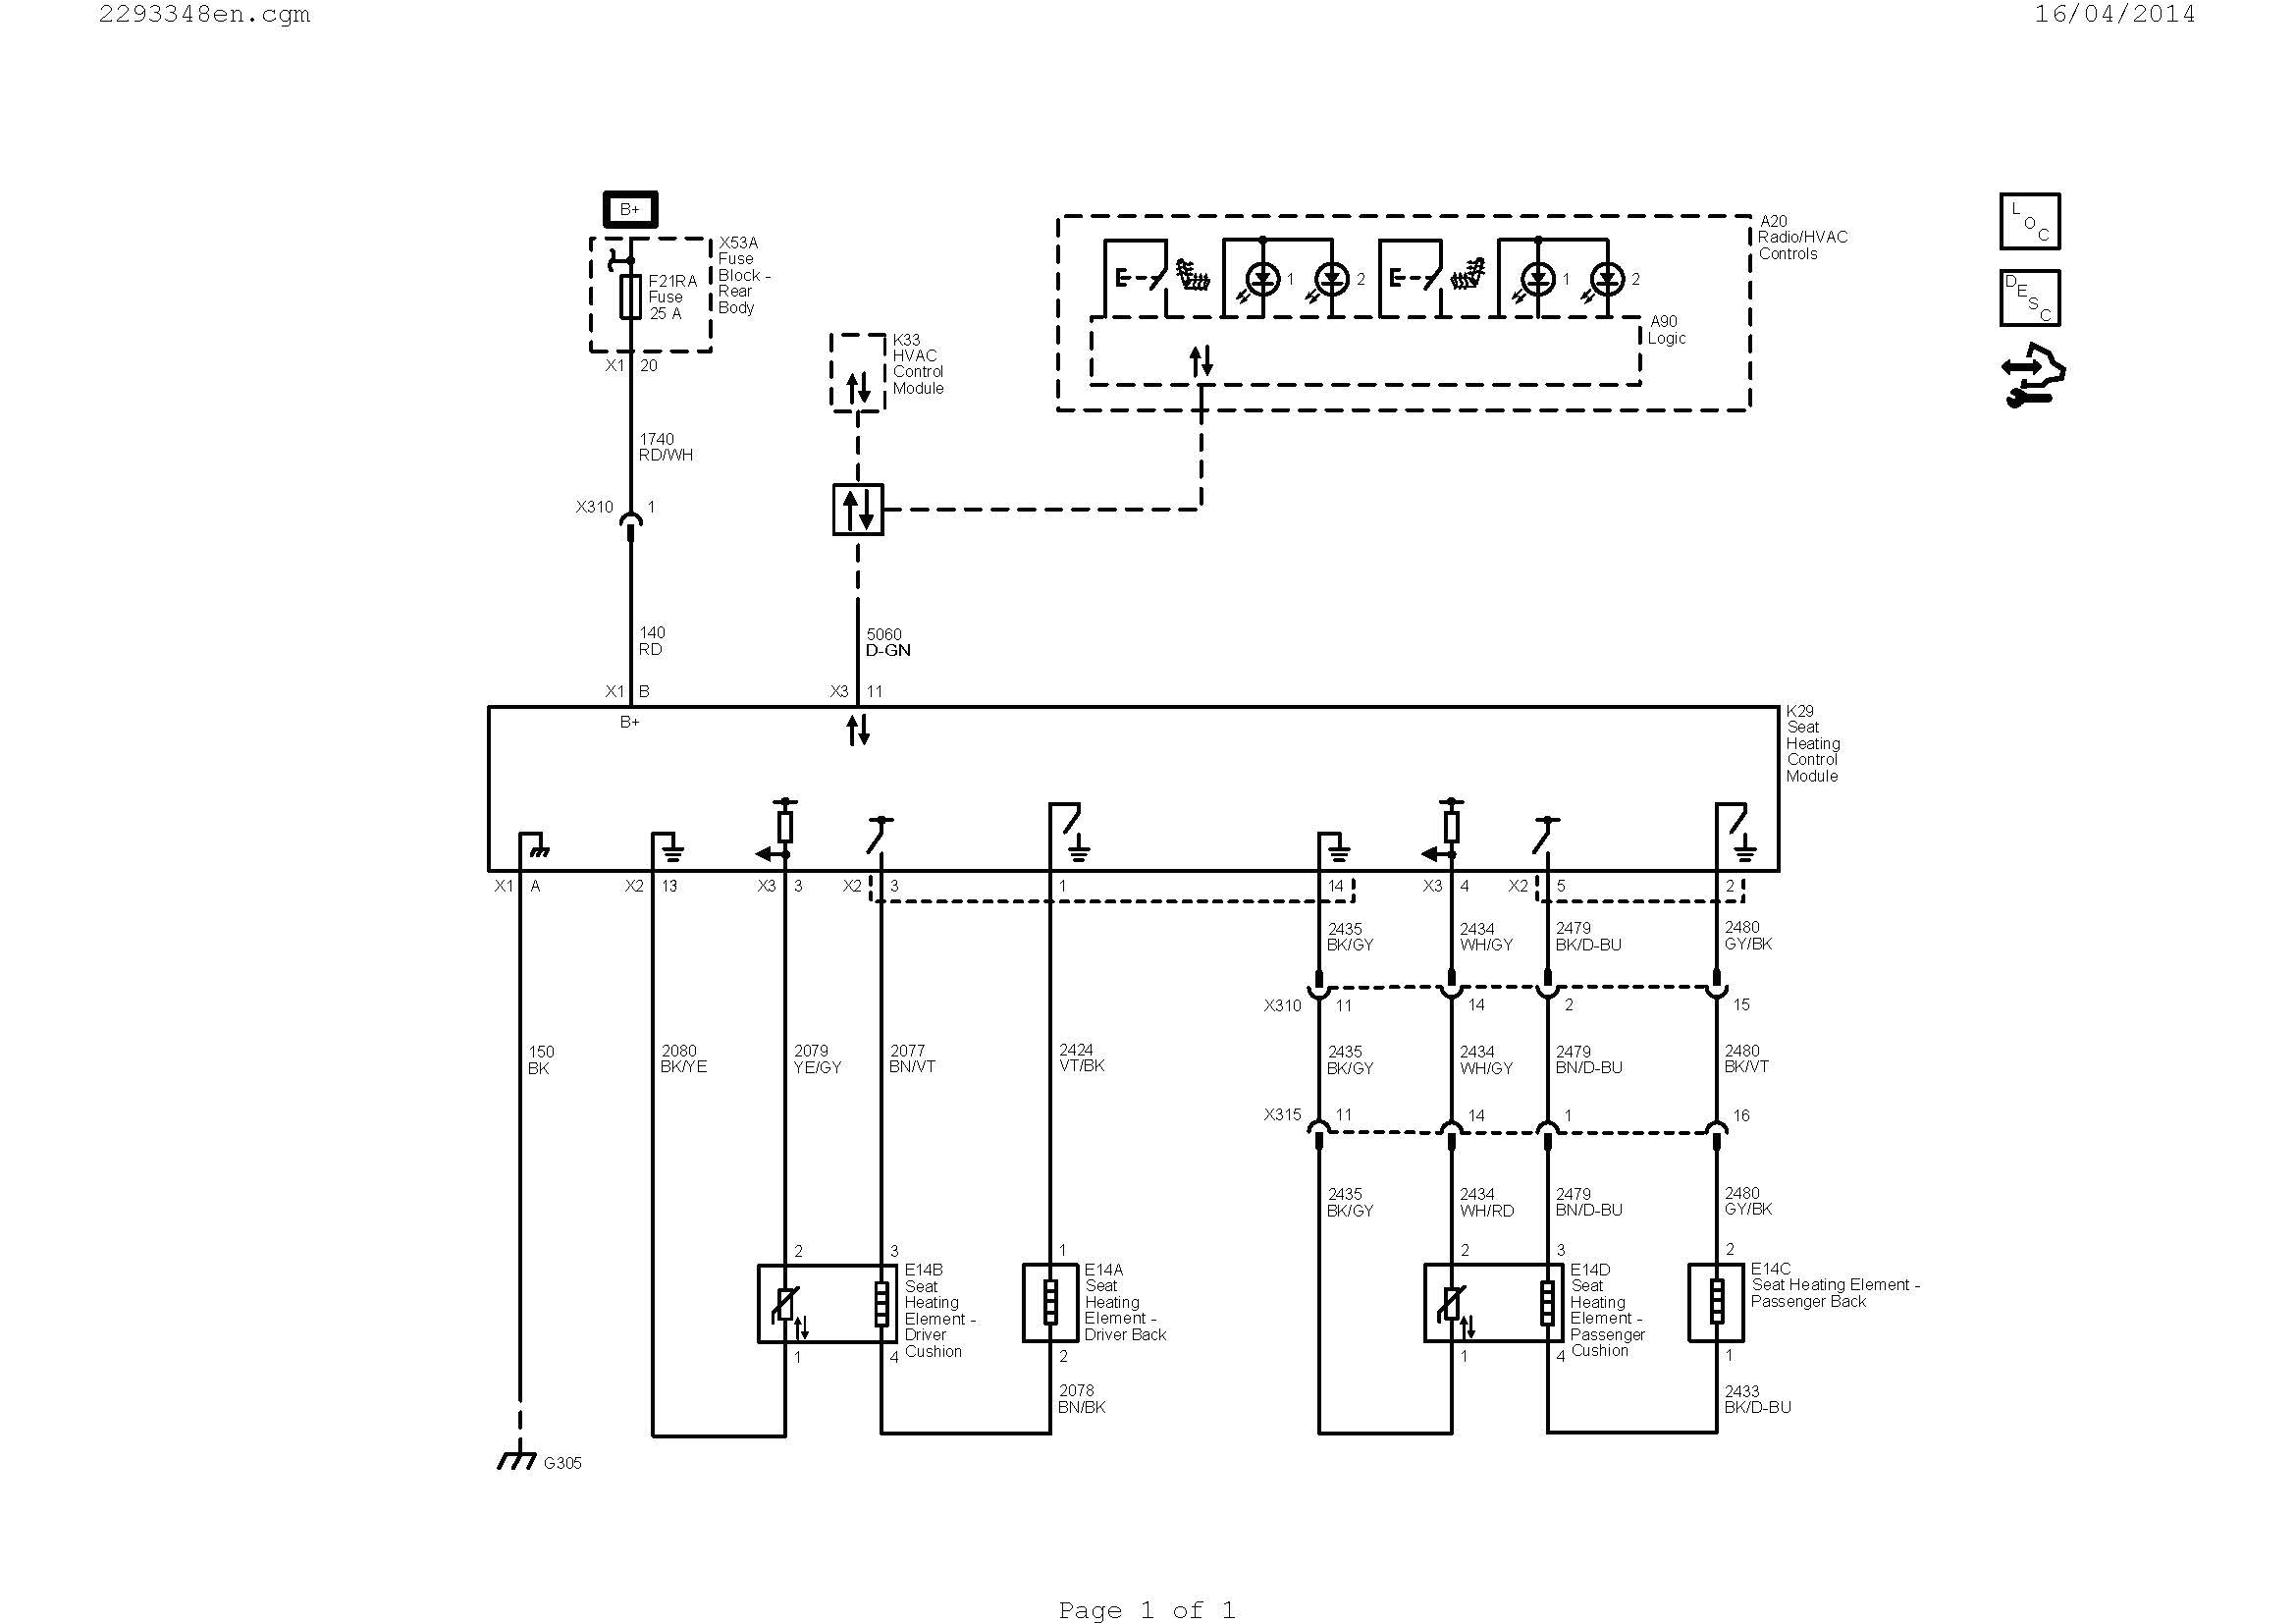 Wiring Diagram for Ac Unit Air Conditioner Wiring Diagram Picture Download Wiring Diagram Sample